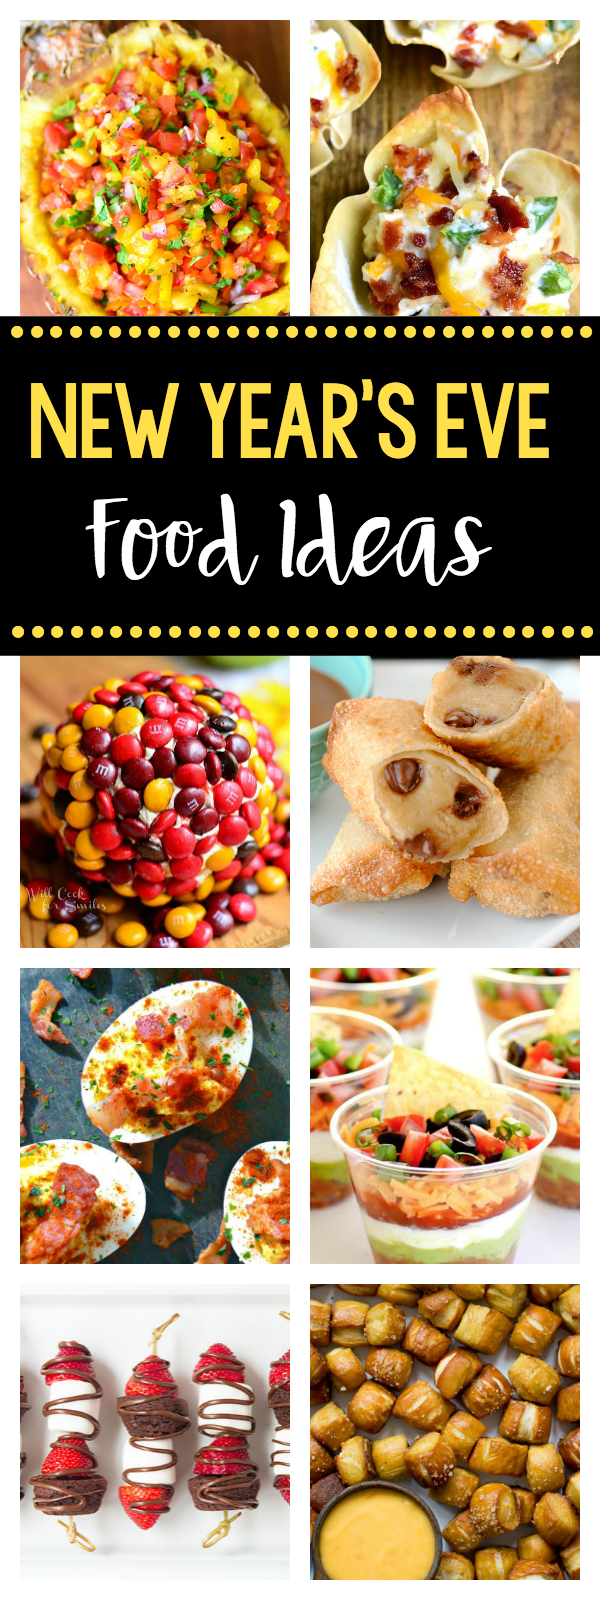 New Years Eve Finger Foods-Great food ideas for New Year's Eve Parties-Everything from salty to sweet. #newyearseve #appetizers